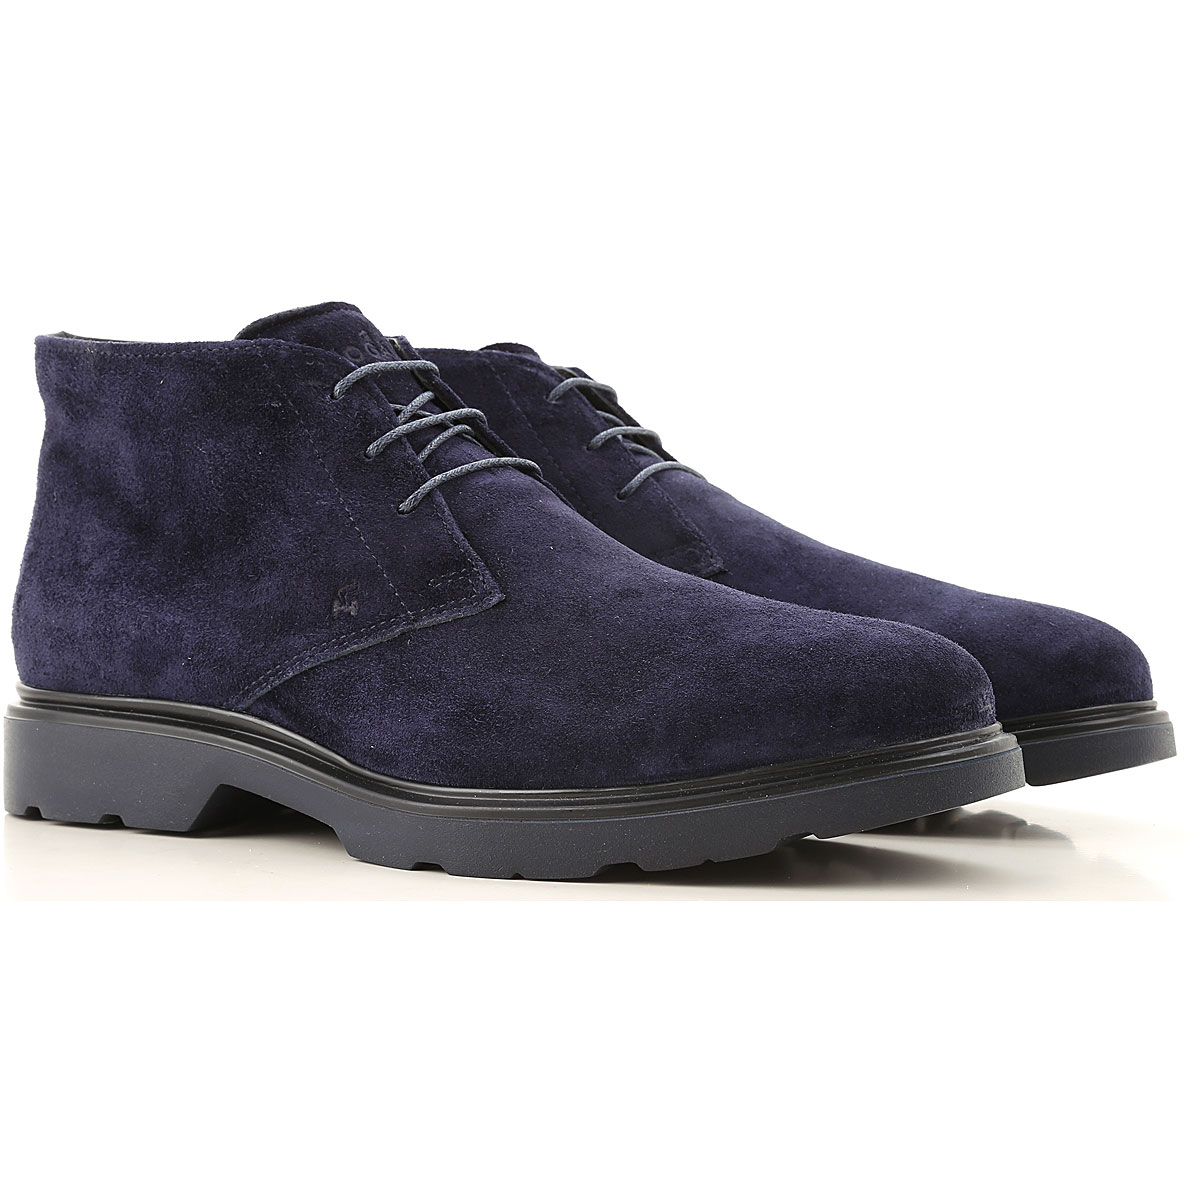 Hogan Desert Boots Chukka for Men On Sale in Outlet, Blu, Suede leather, 2019, 10.5 6 8